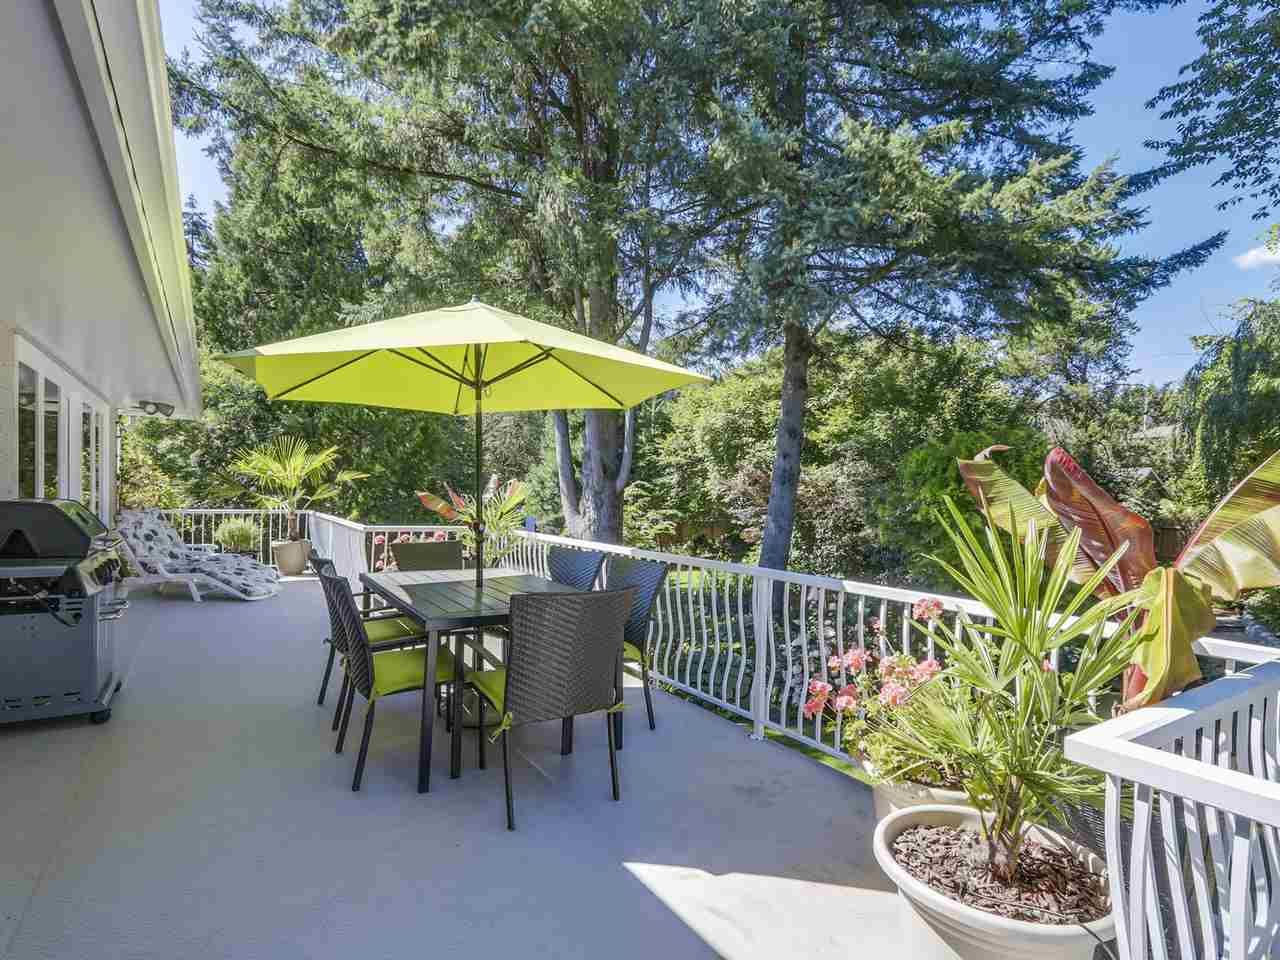 Photo 7: Photos: 587 HARRISON Avenue in Coquitlam: Coquitlam West House for sale : MLS®# R2097877